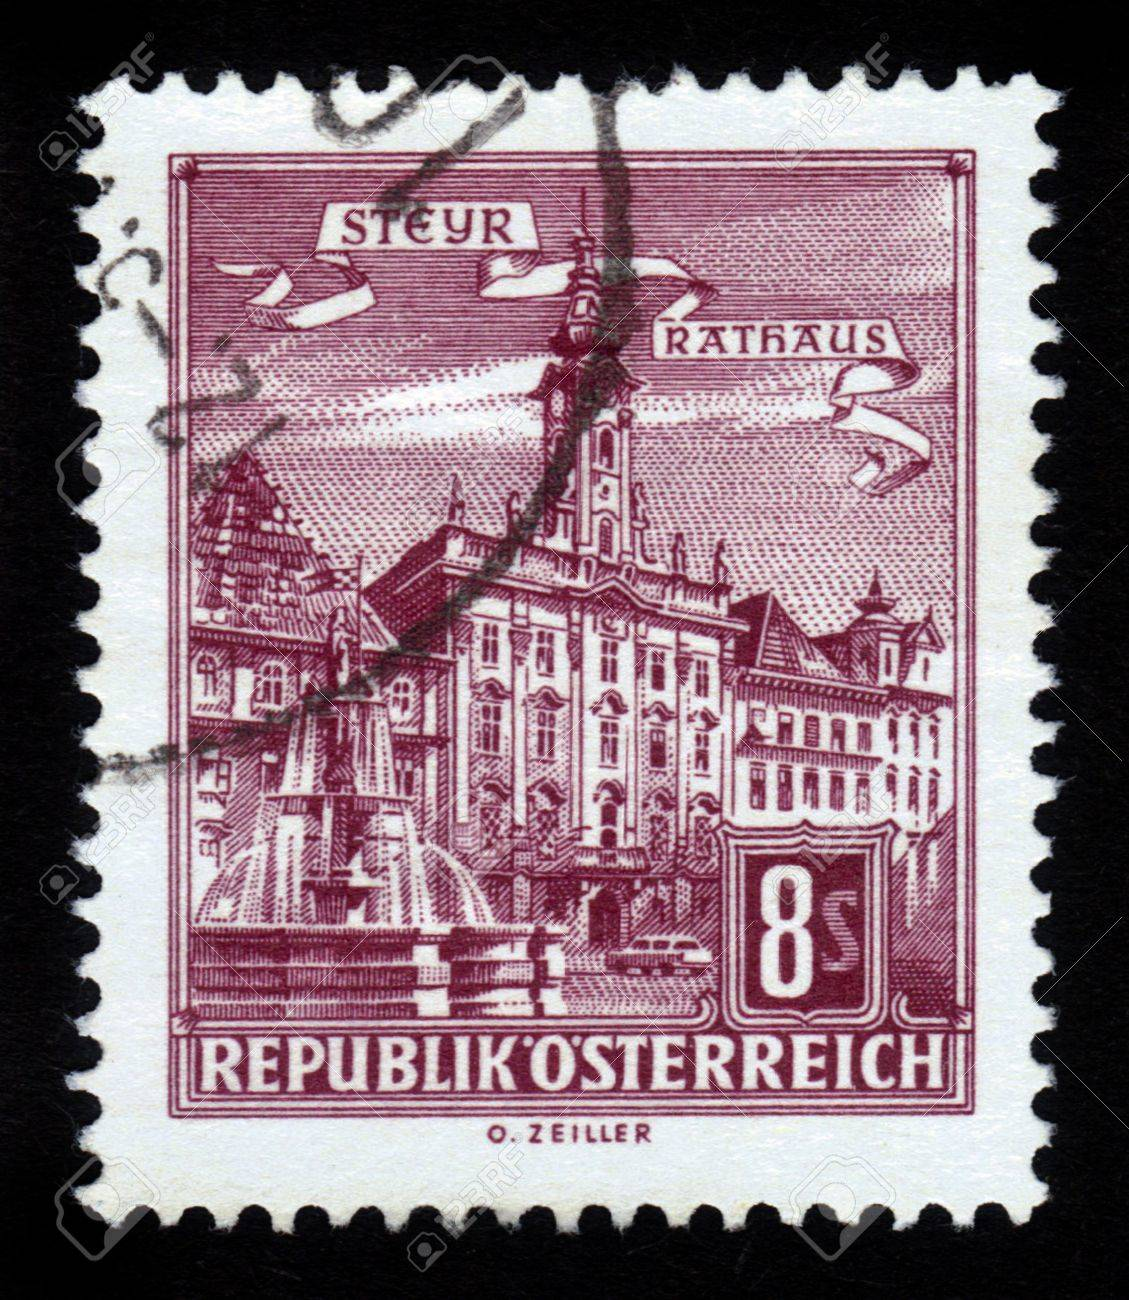 AUSTRIA - CIRCA 1964: A stamp printed in Austria showing Steyr  town hall , Rathaus circa 1964 Stock Photo - 17326960